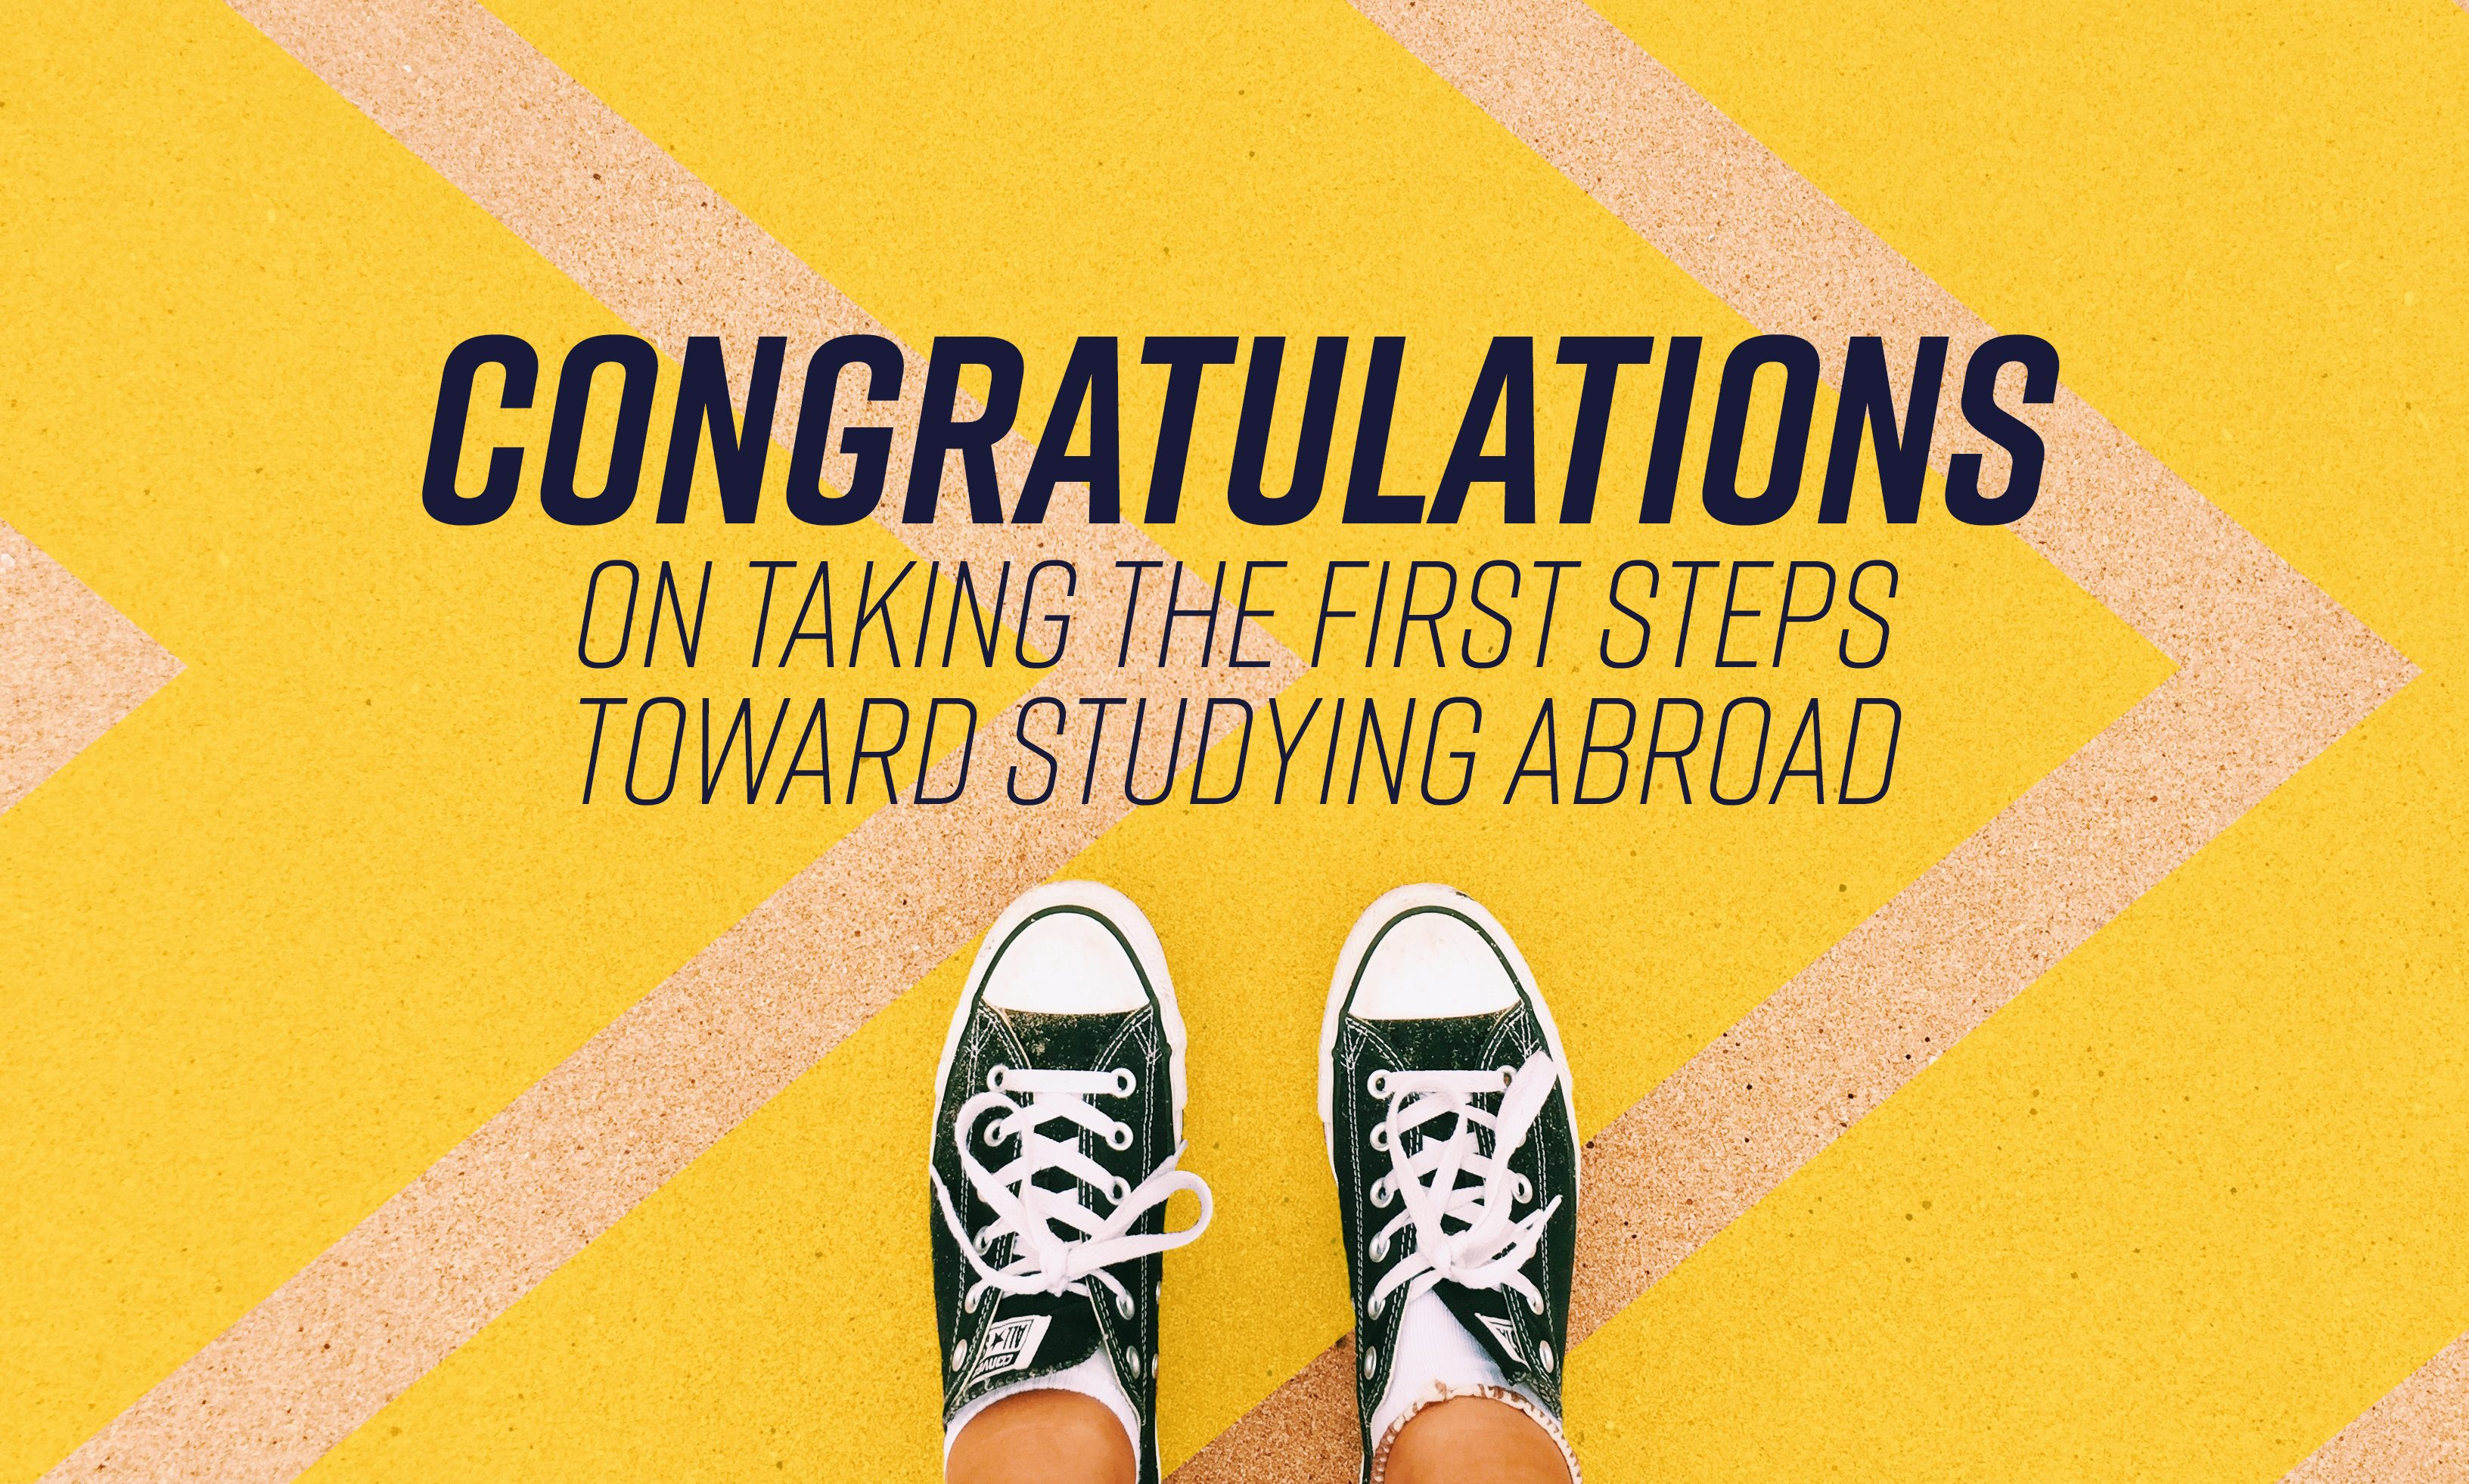 Congratulations on taking the first steps toward studying abroad